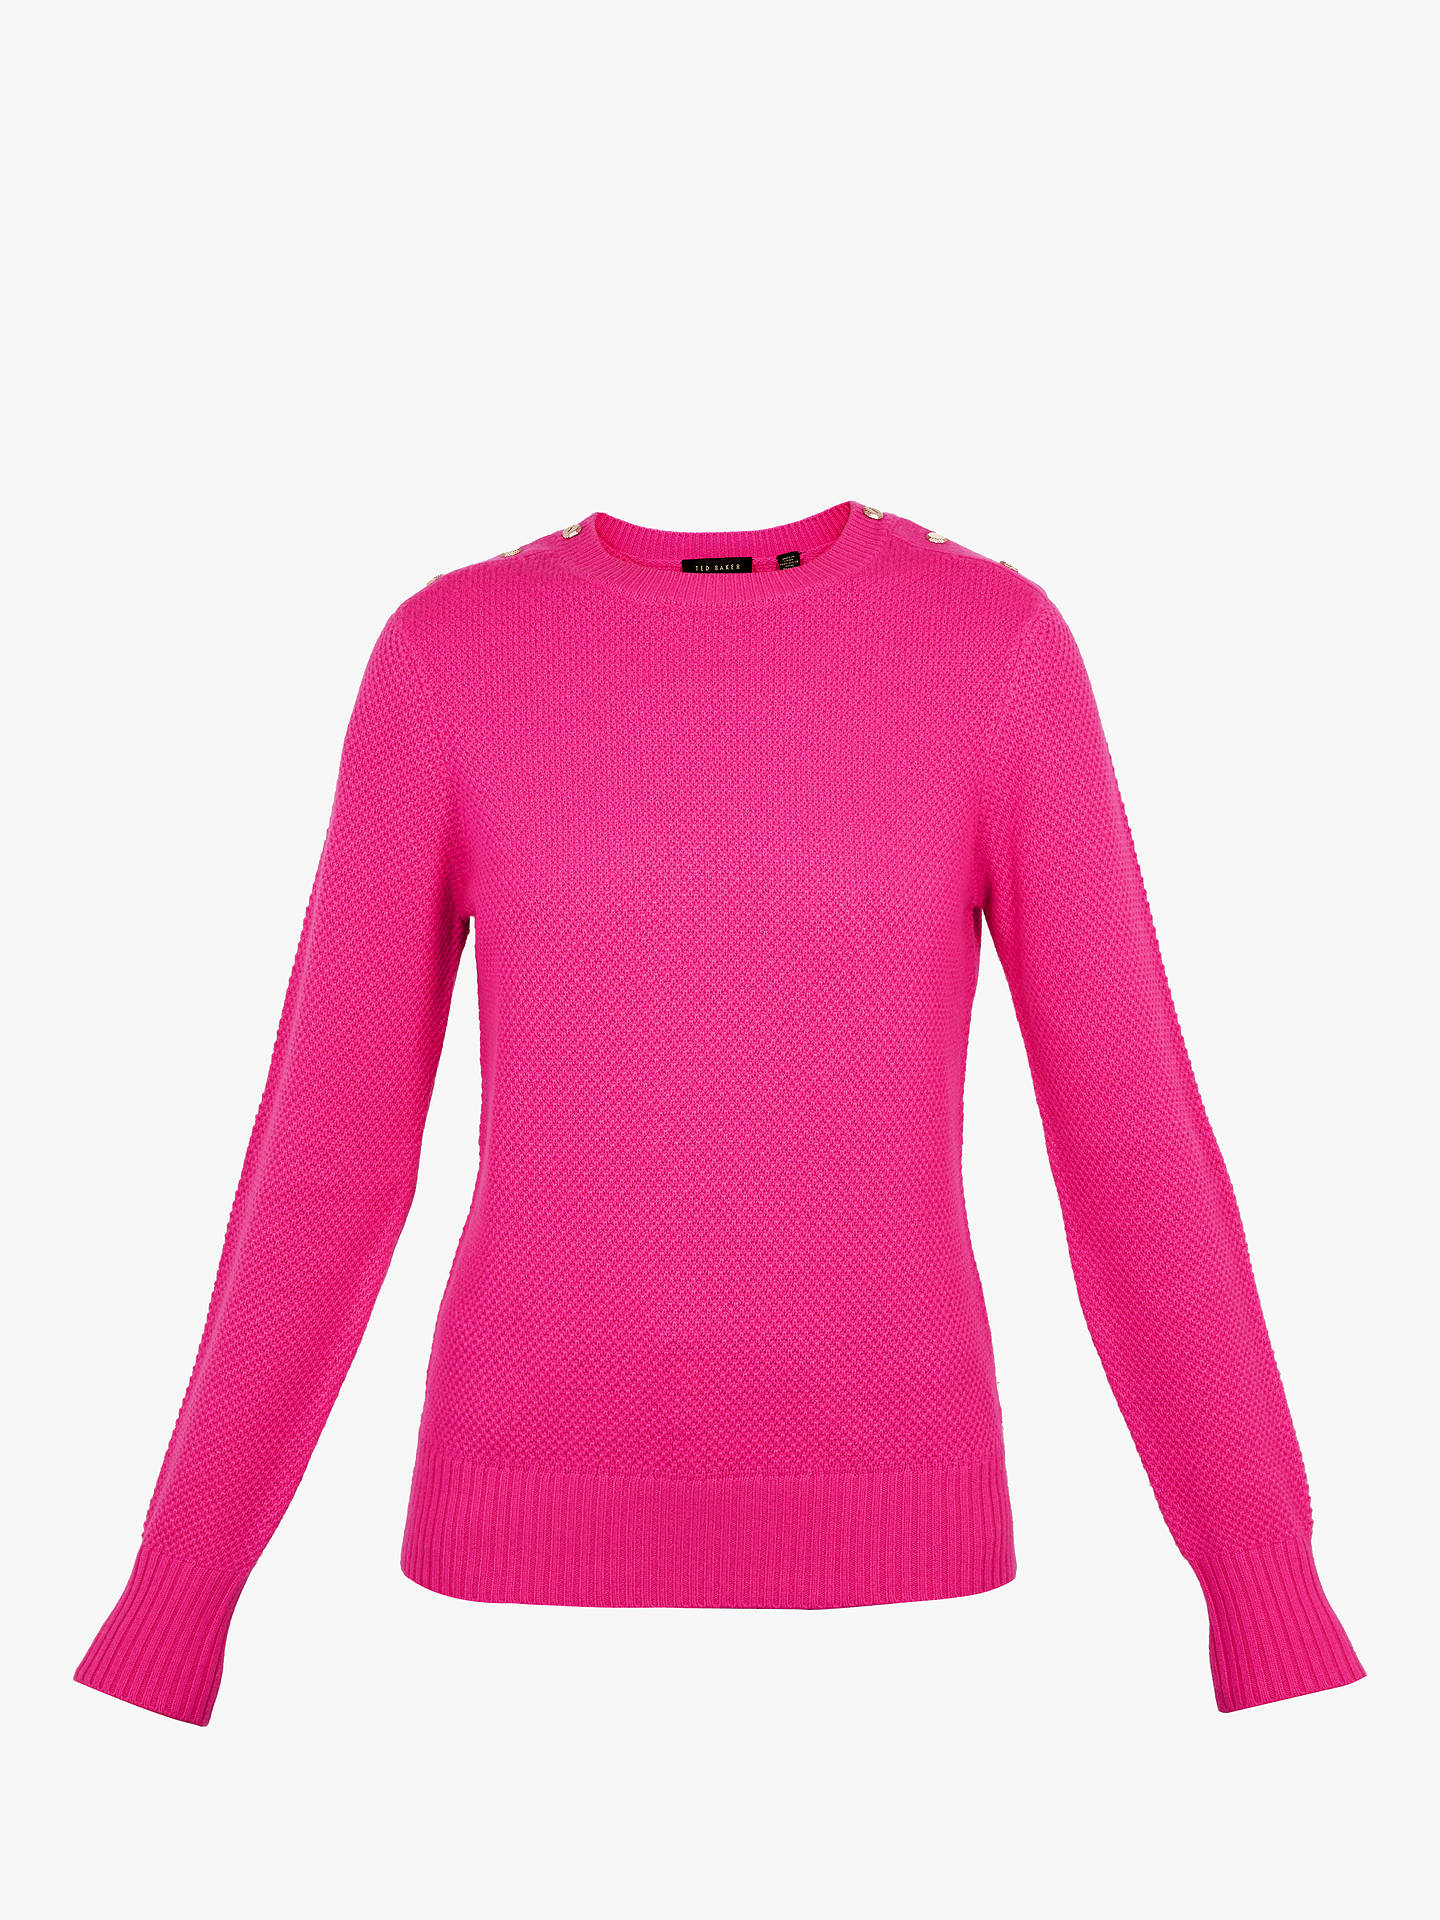 BuyTed Baker Gorjie Textured Stitch Button Shoulder Jumper, Fuchsia Pink, 4 Online at johnlewis.com